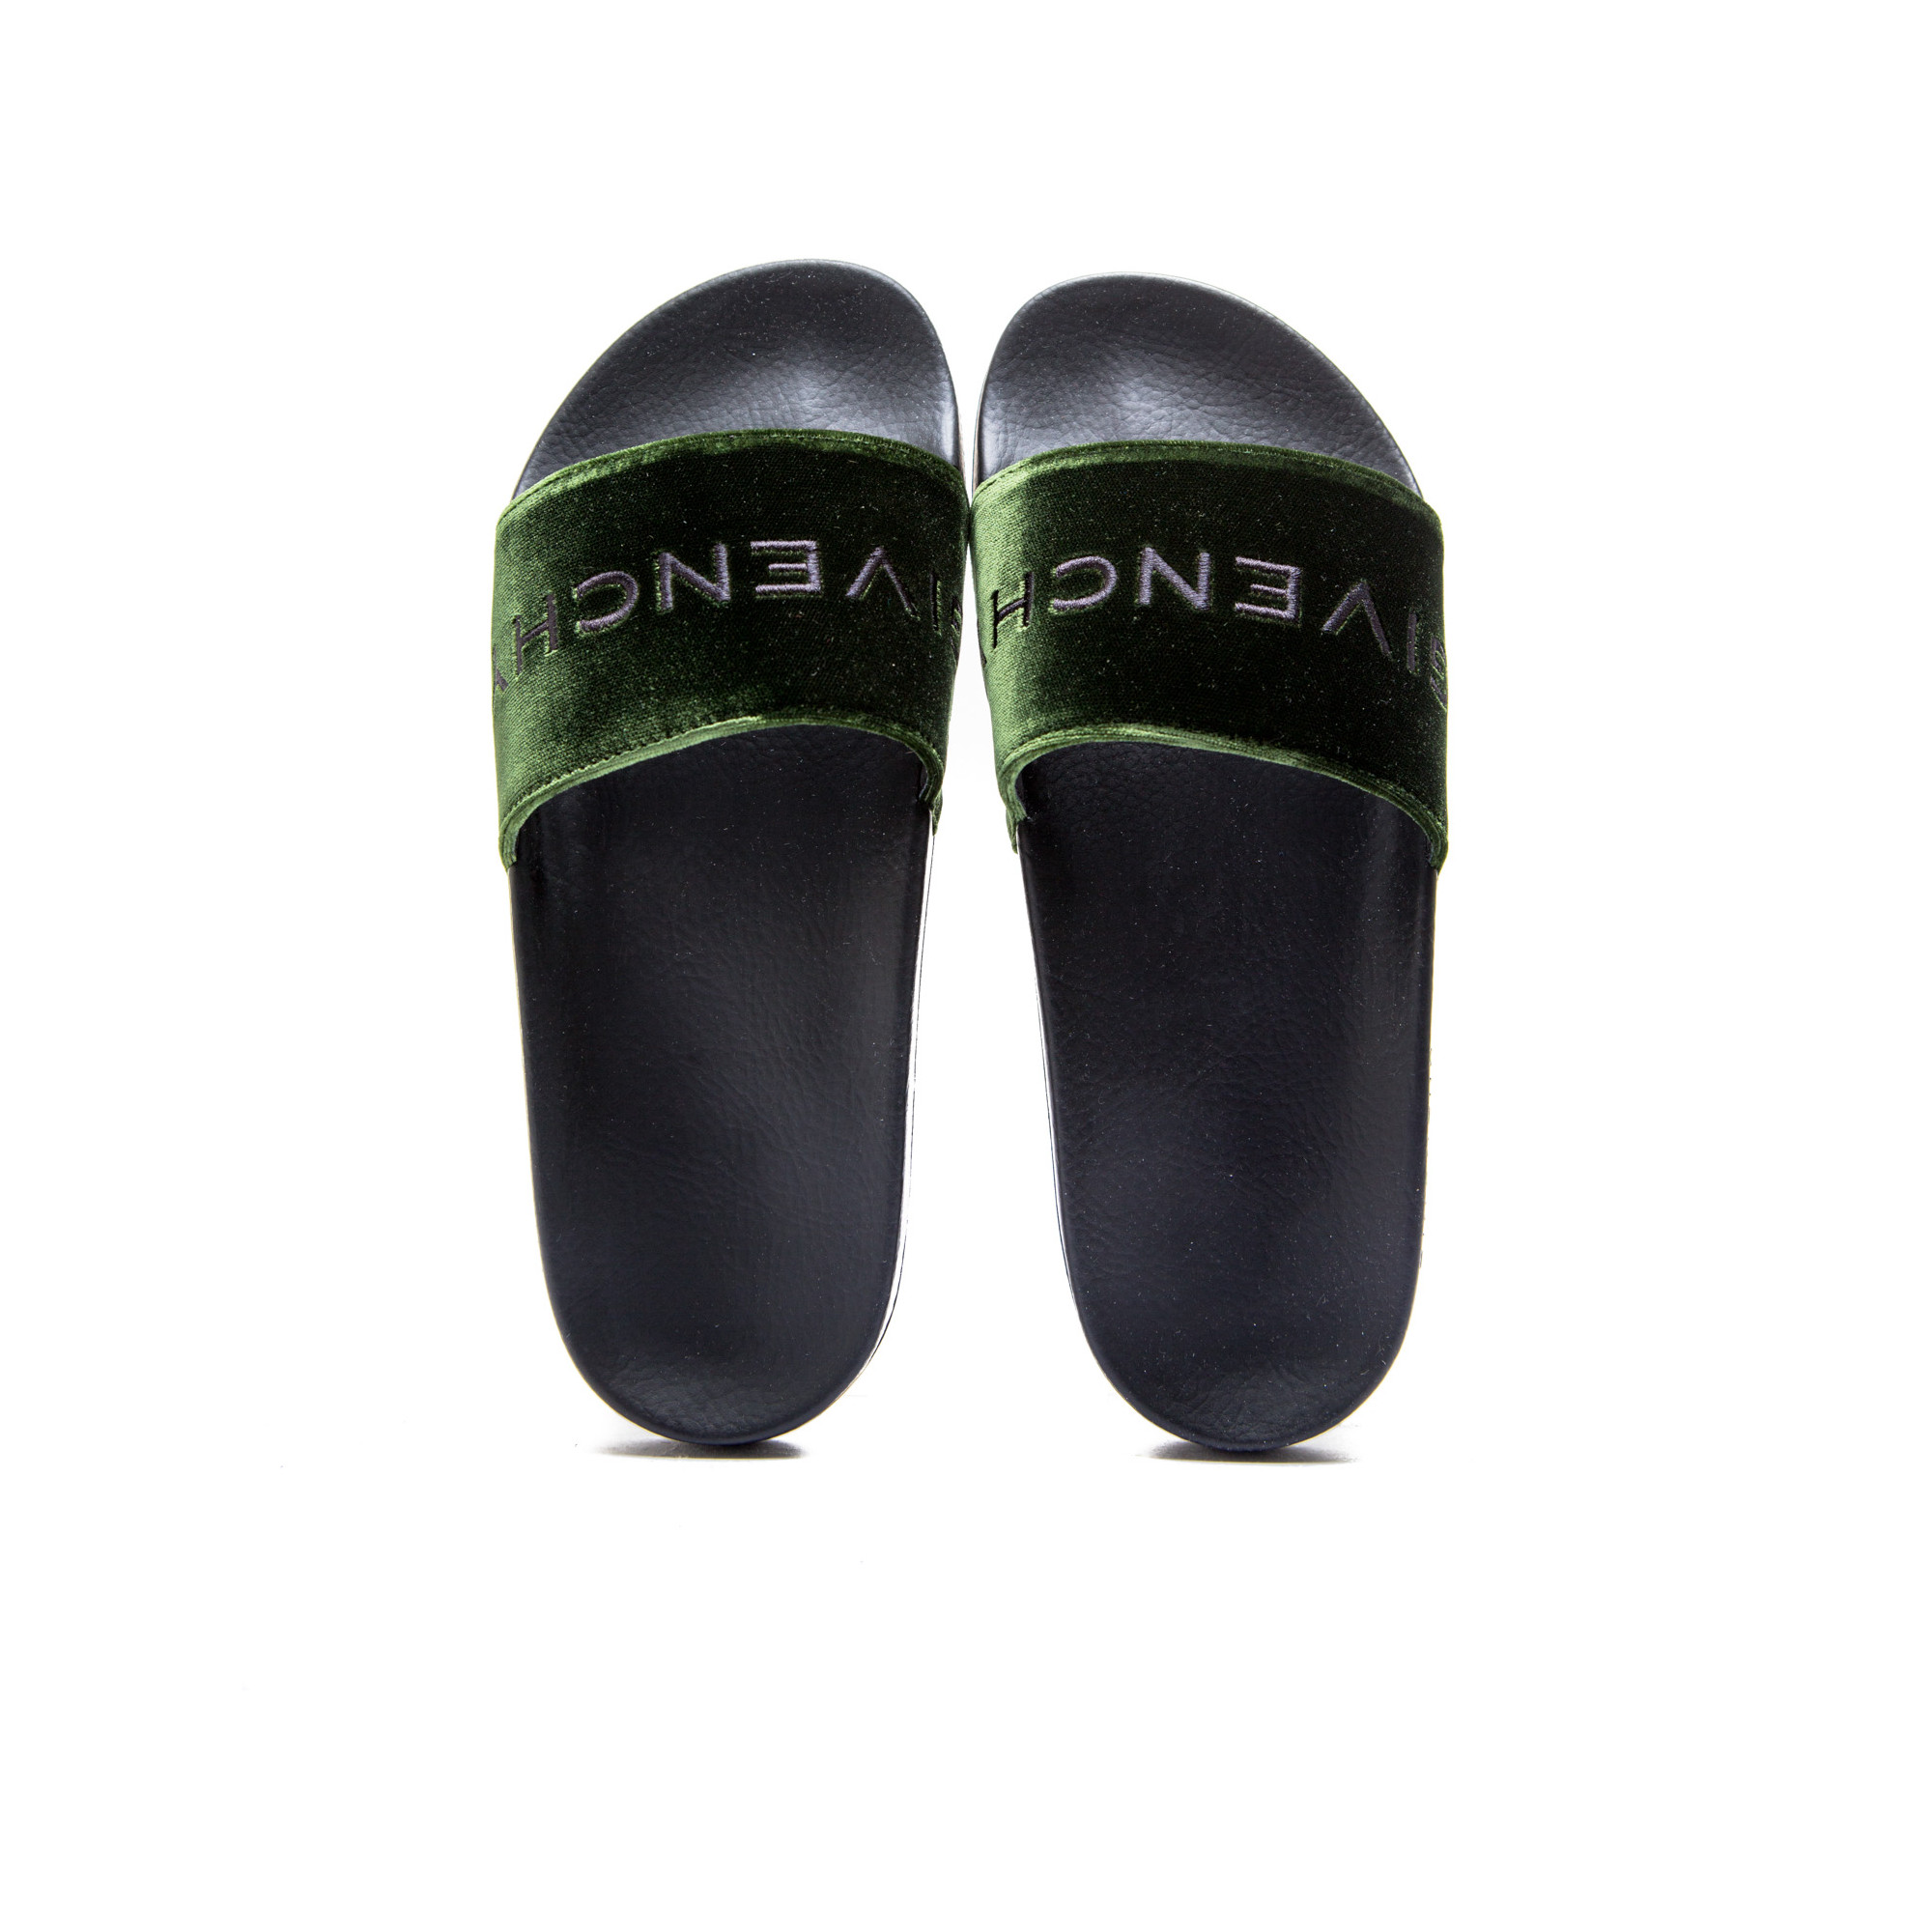 df442cea775f Givenchy slide flat sandal greenbe e jpg 2000x2000 Givenchy slide sandals